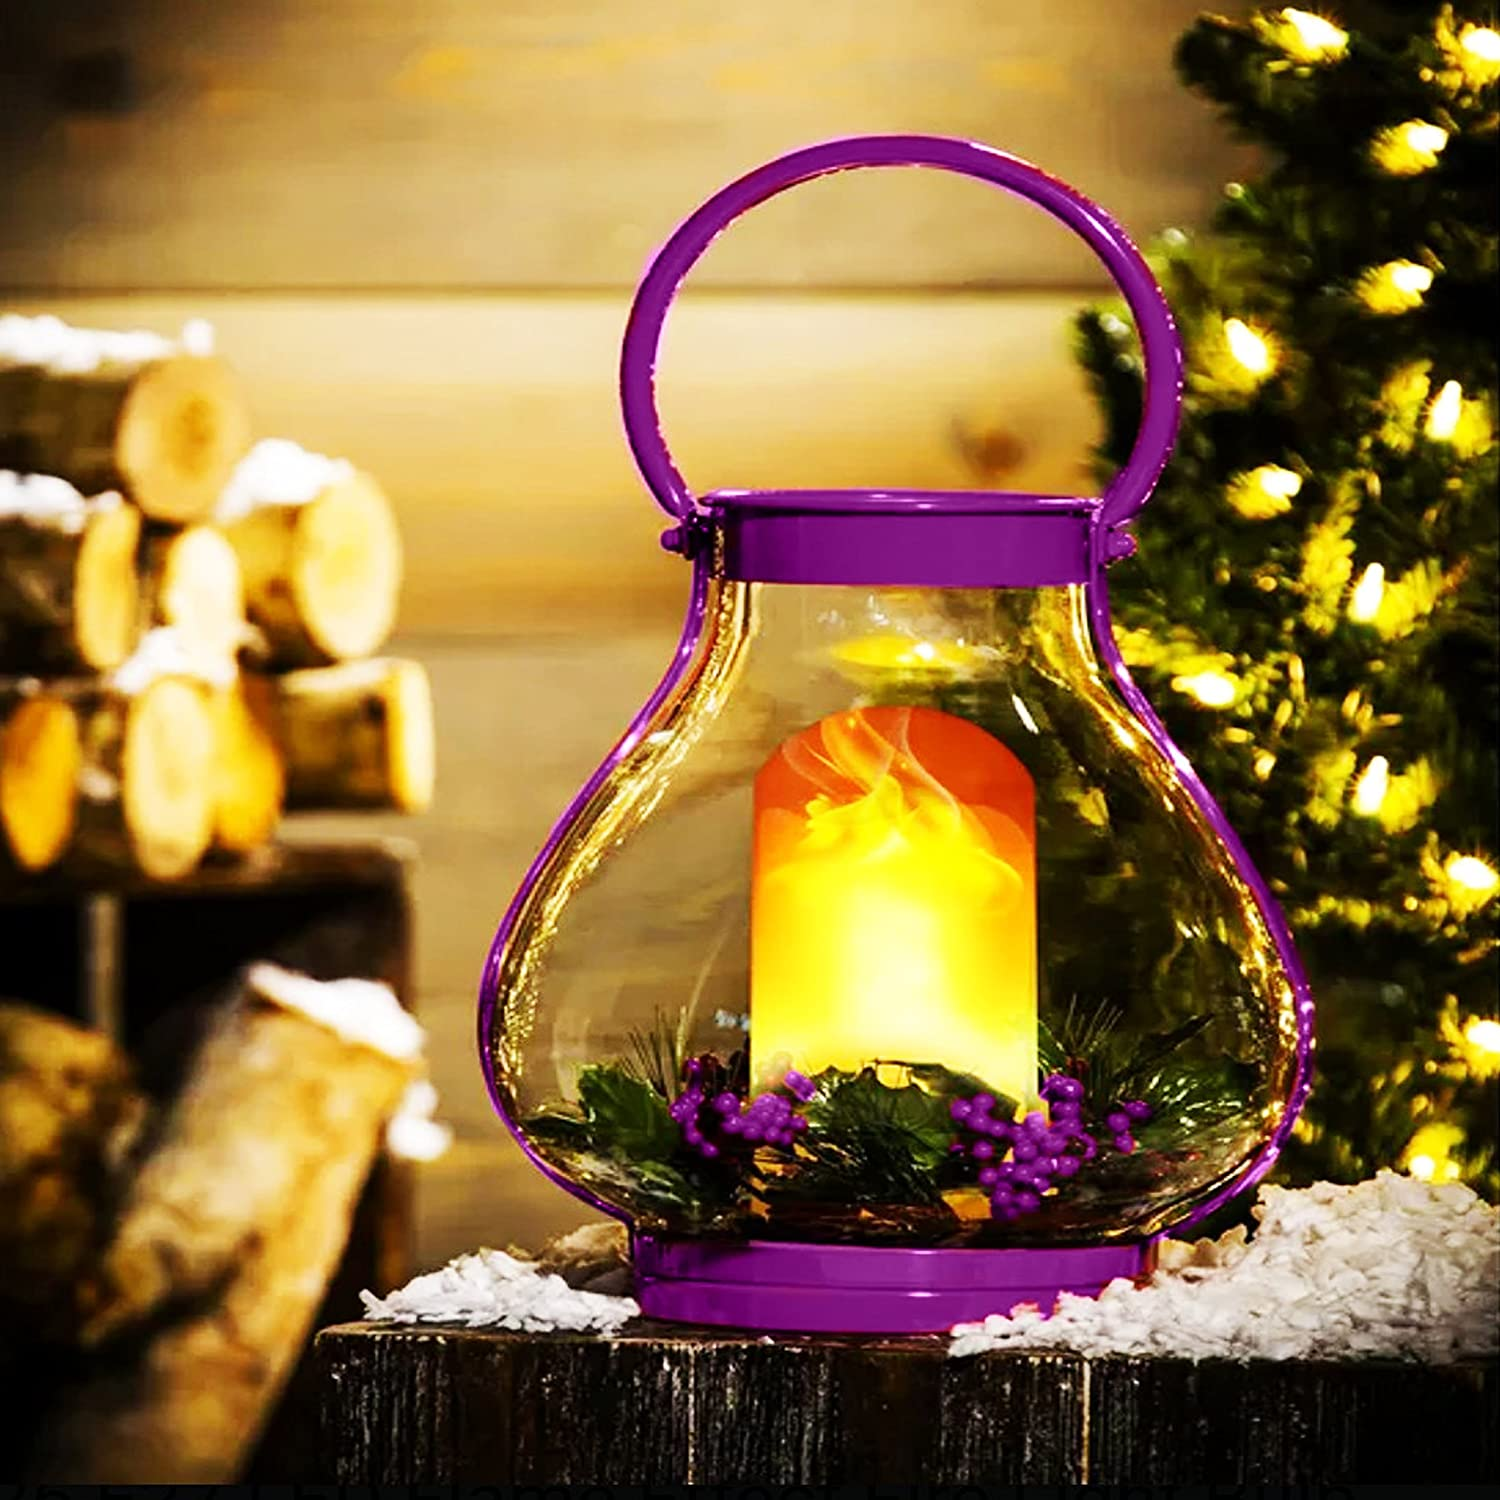 FLM-PKR001 Christmas Decoration Indoor Outdoor Power Saving Upto 90/% Decorative Atmosphere e26 Flicker 3 Modes with Gravity Sensor 1 Year Warranty 1 Pack Piktronics LED Flame Effect Light Bulbs